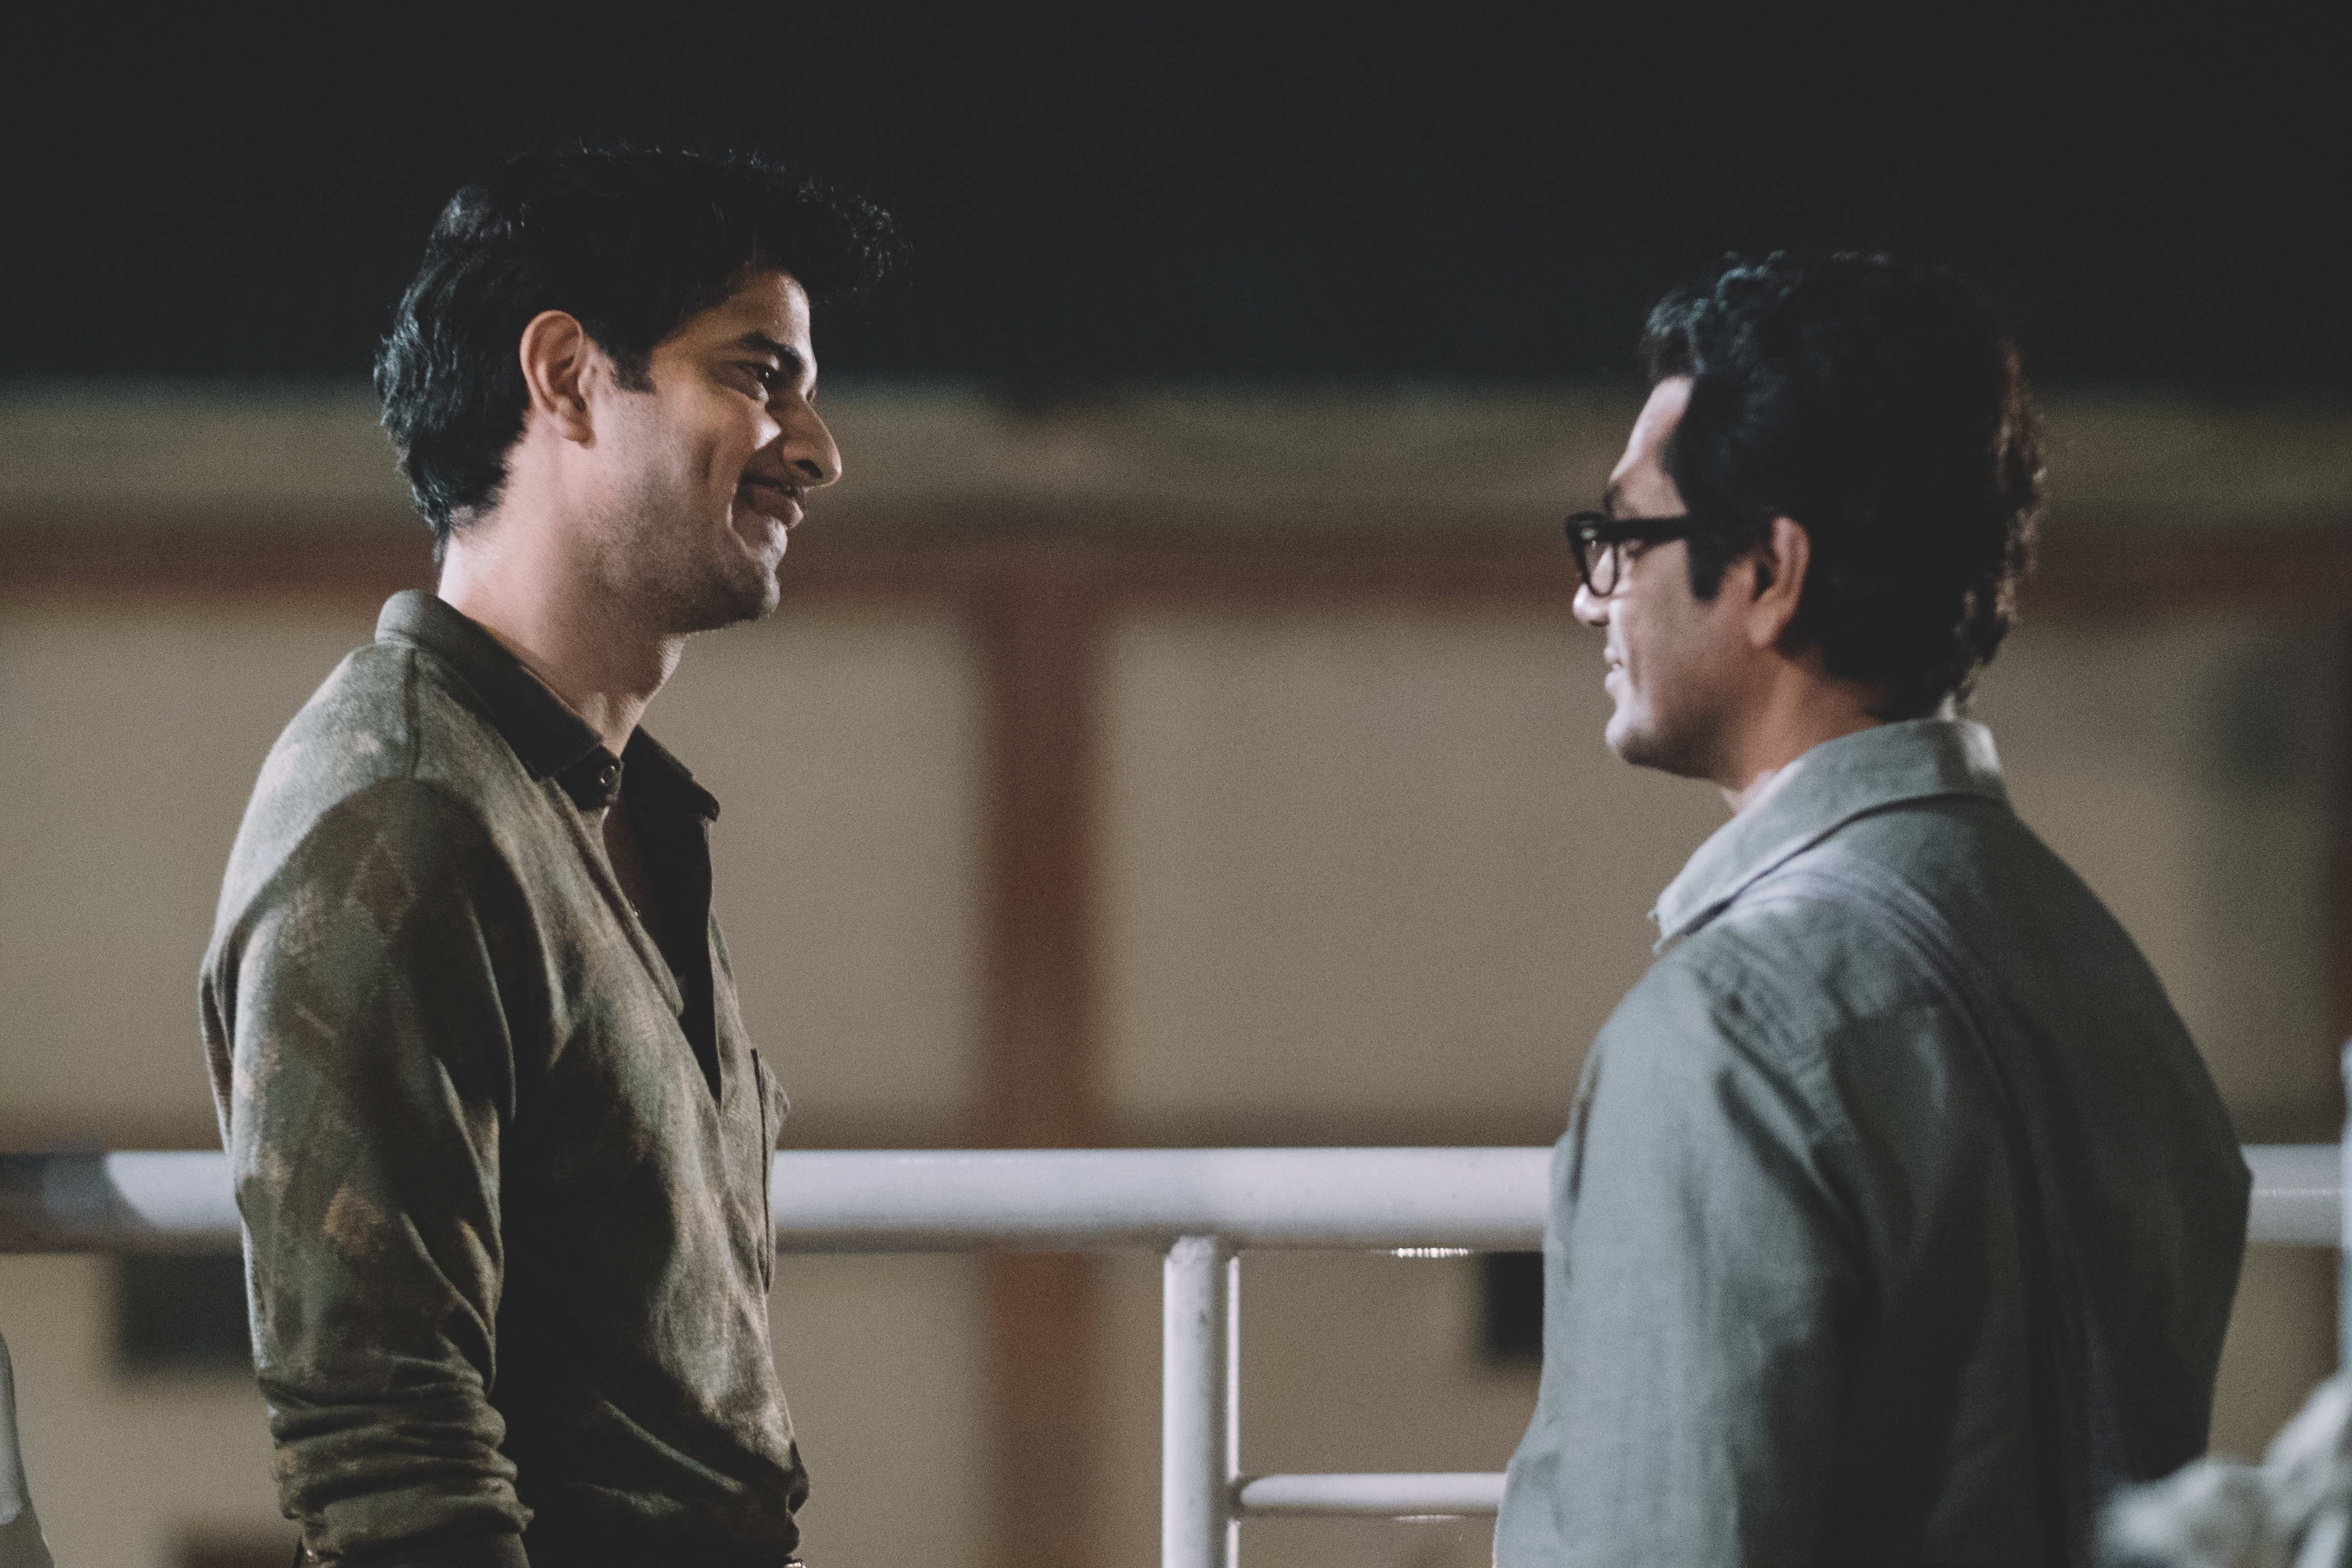 Shyam and Manto